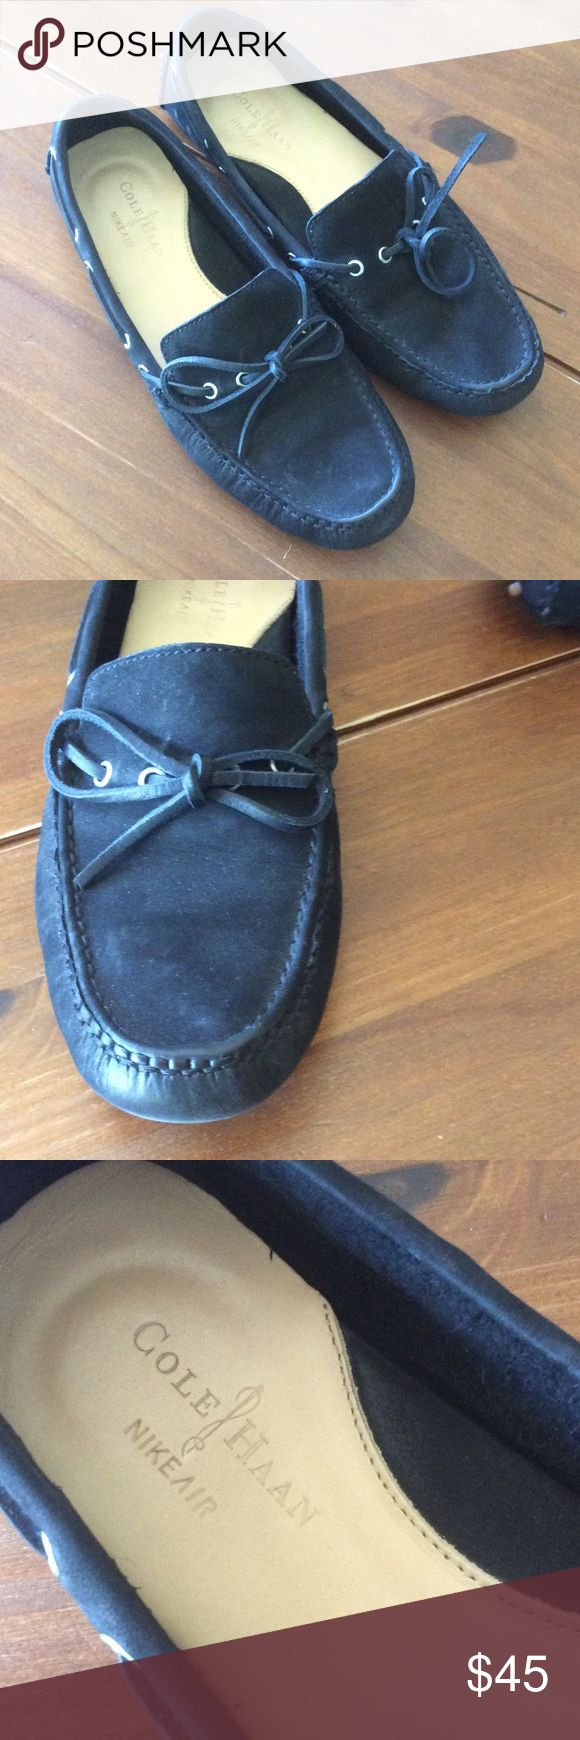 Cole Haan black driving loafers Mint condition black Cole Haan driving loafers, worn a handful of times, size 7 women's Cole Haan Shoes Flats & Loafers